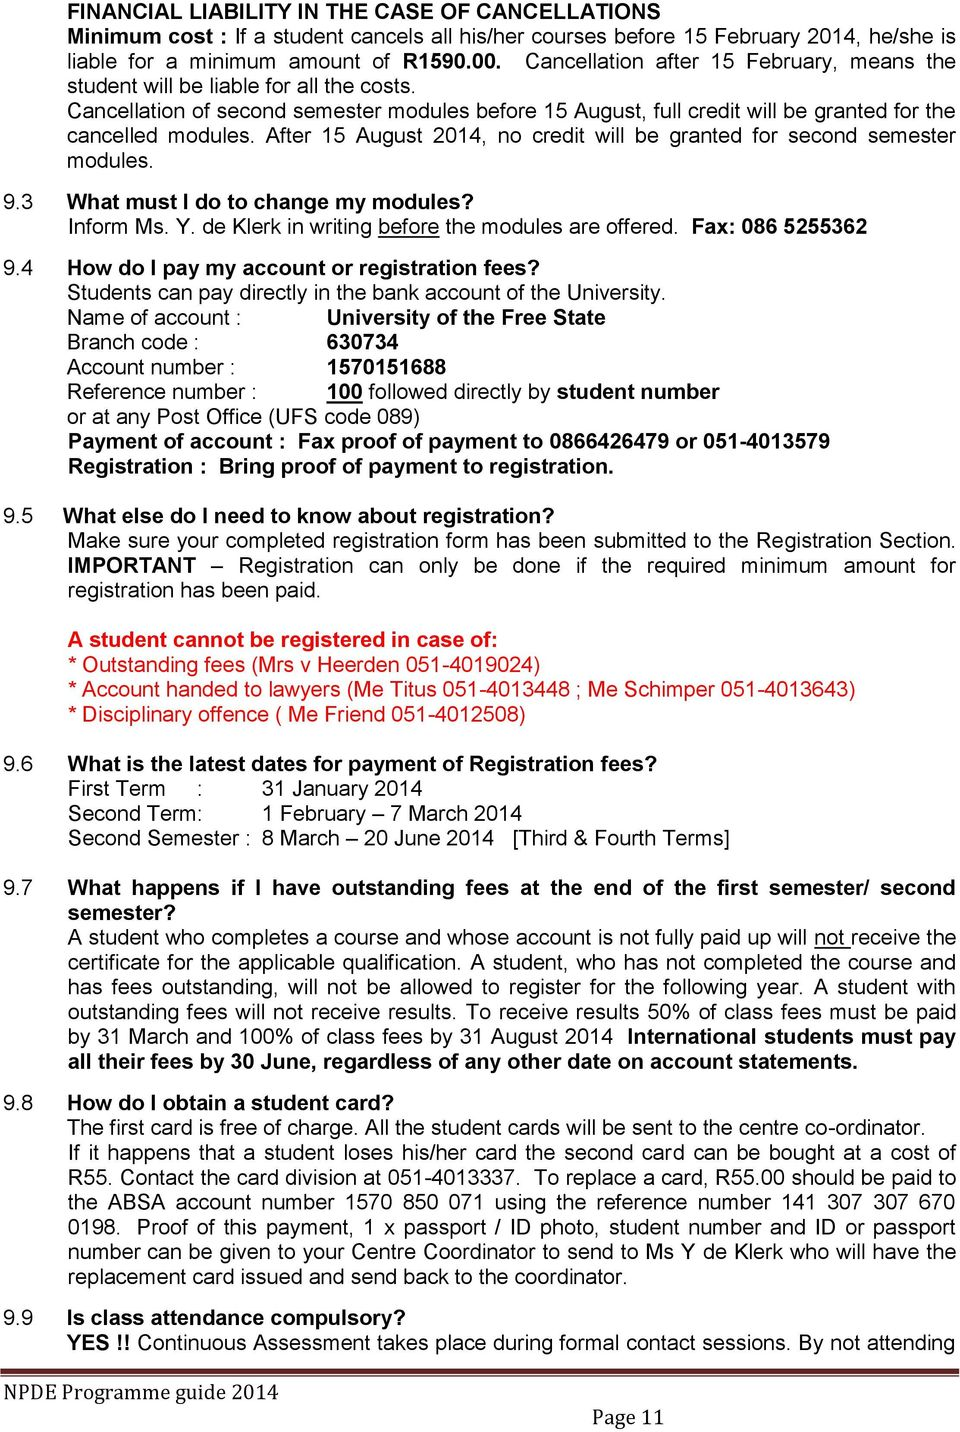 tut application forms july 2014secondsemester